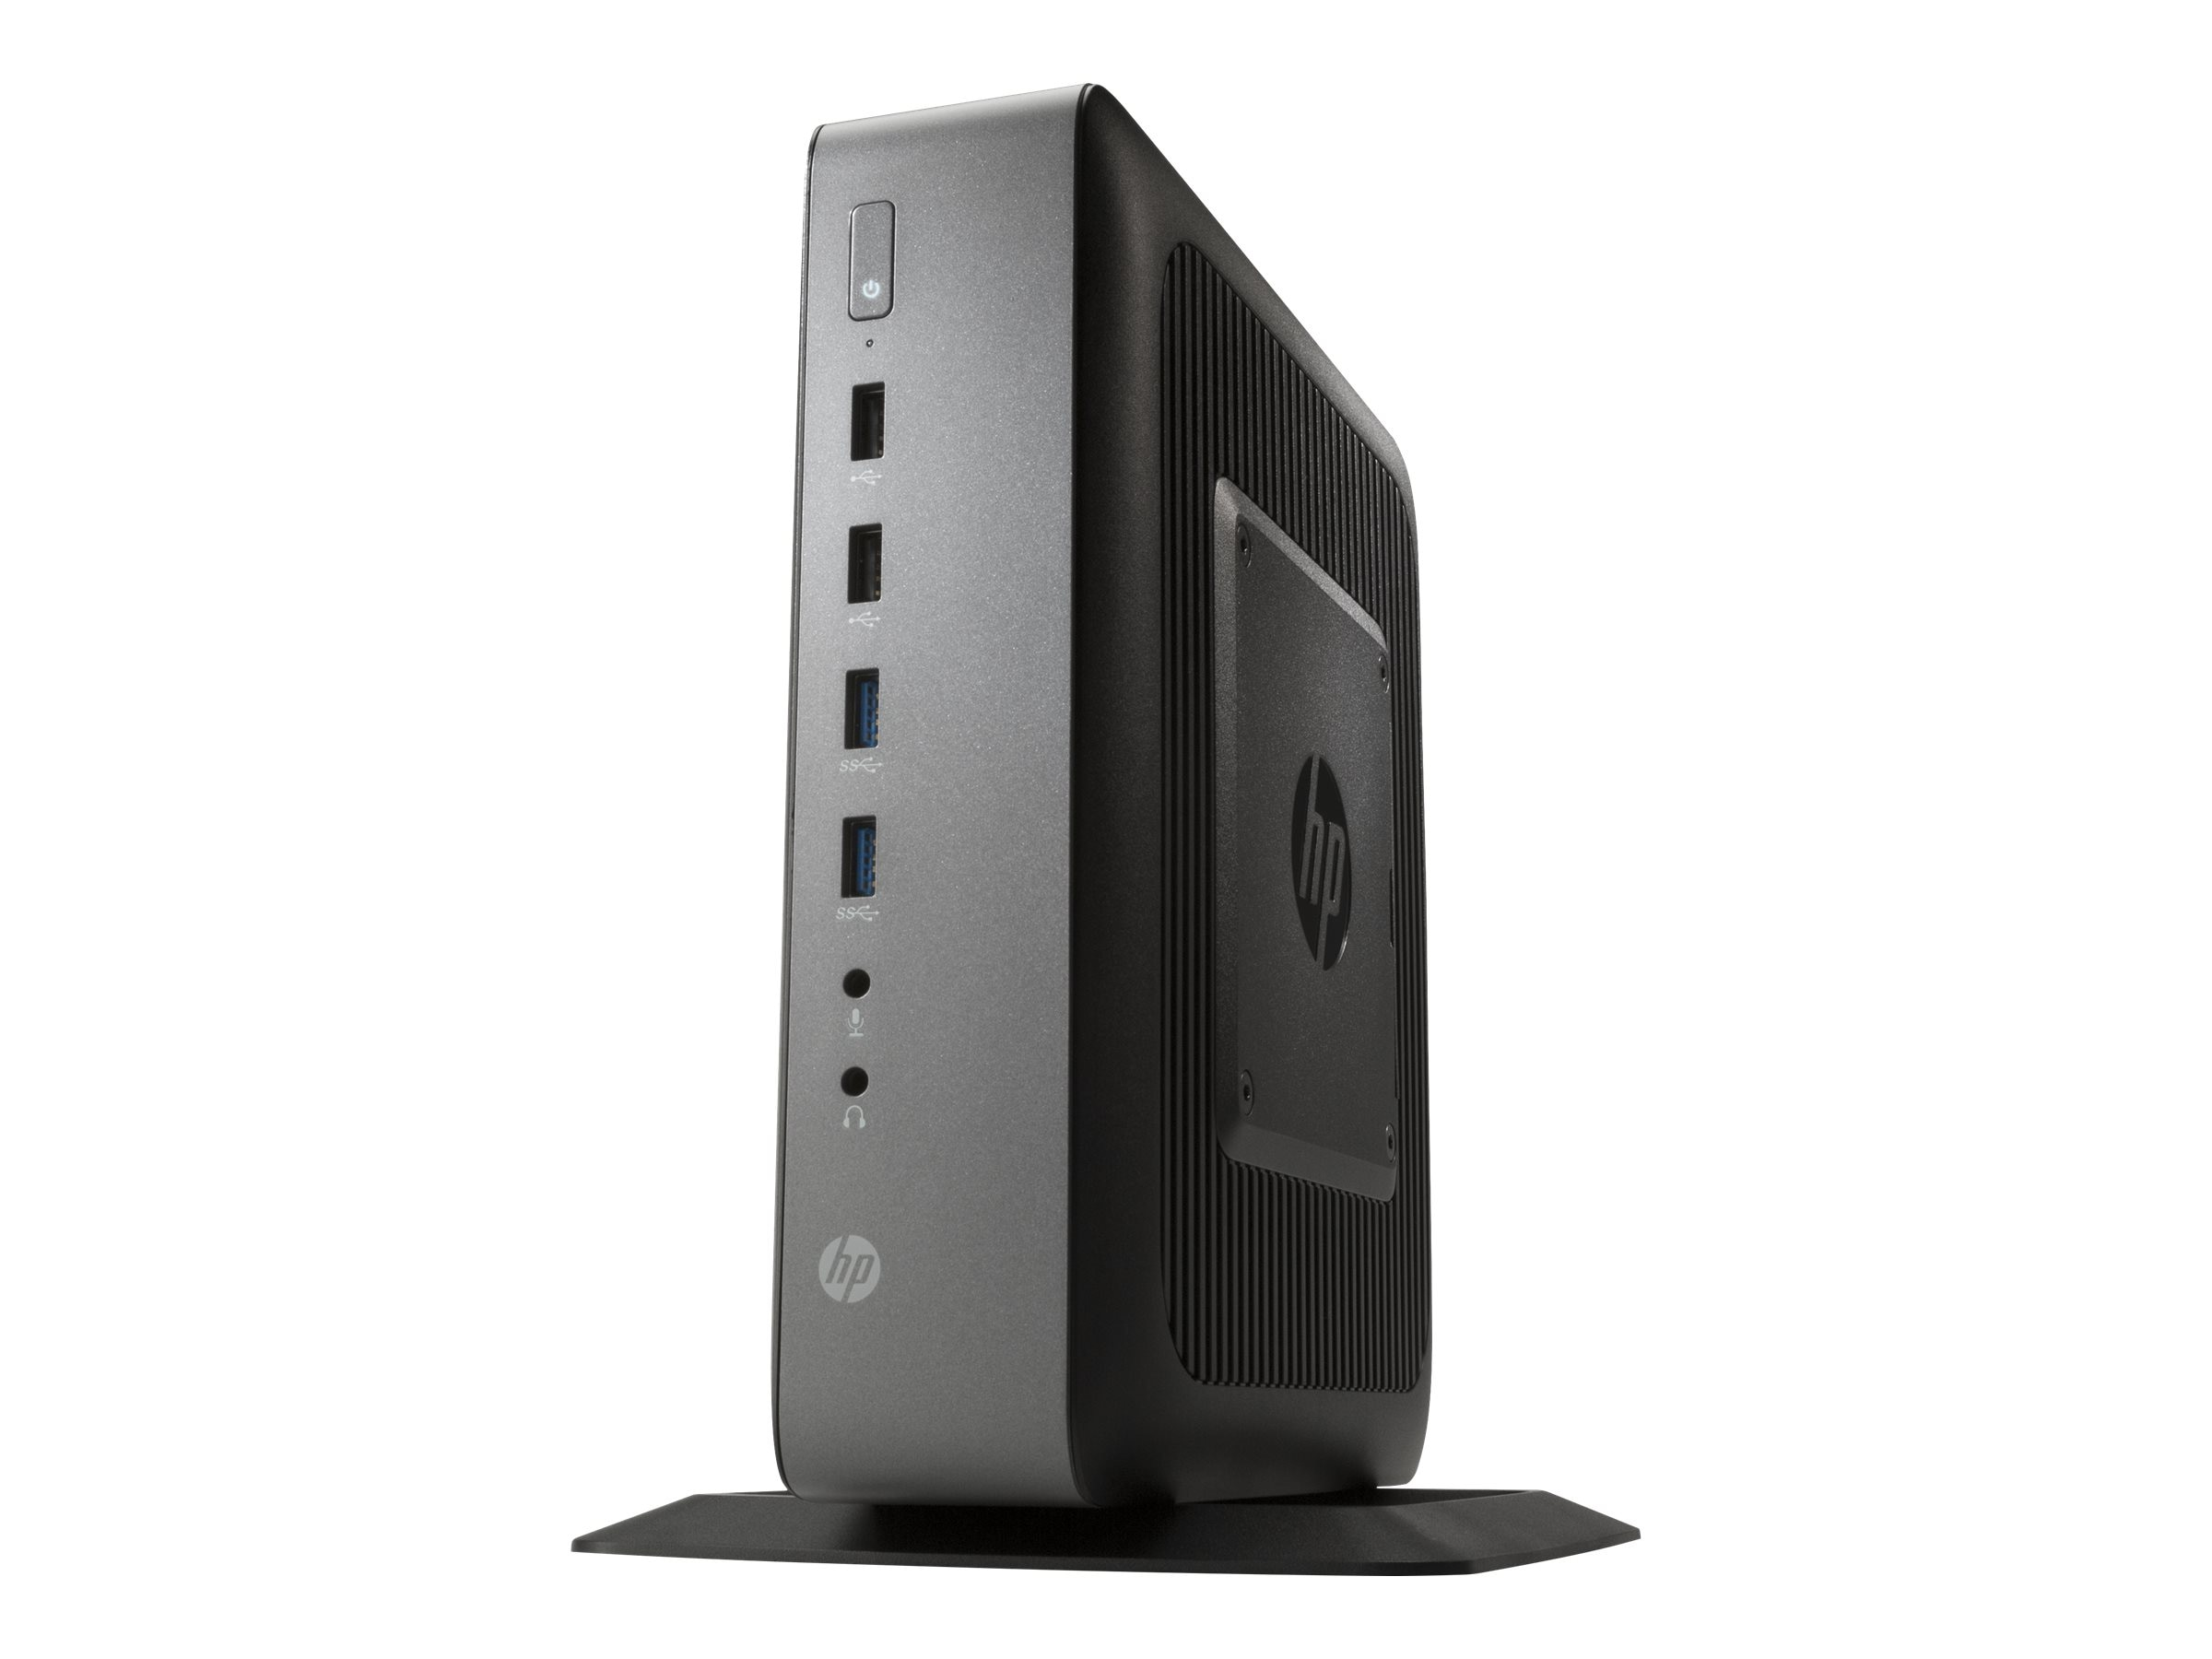 HP t620 PLUS Flexible Thin Client AMD QC GX-420CA 2.0GHz 4GB 16GB Flash HD8400E ac BT WE864, Y4Z47UA#ABA